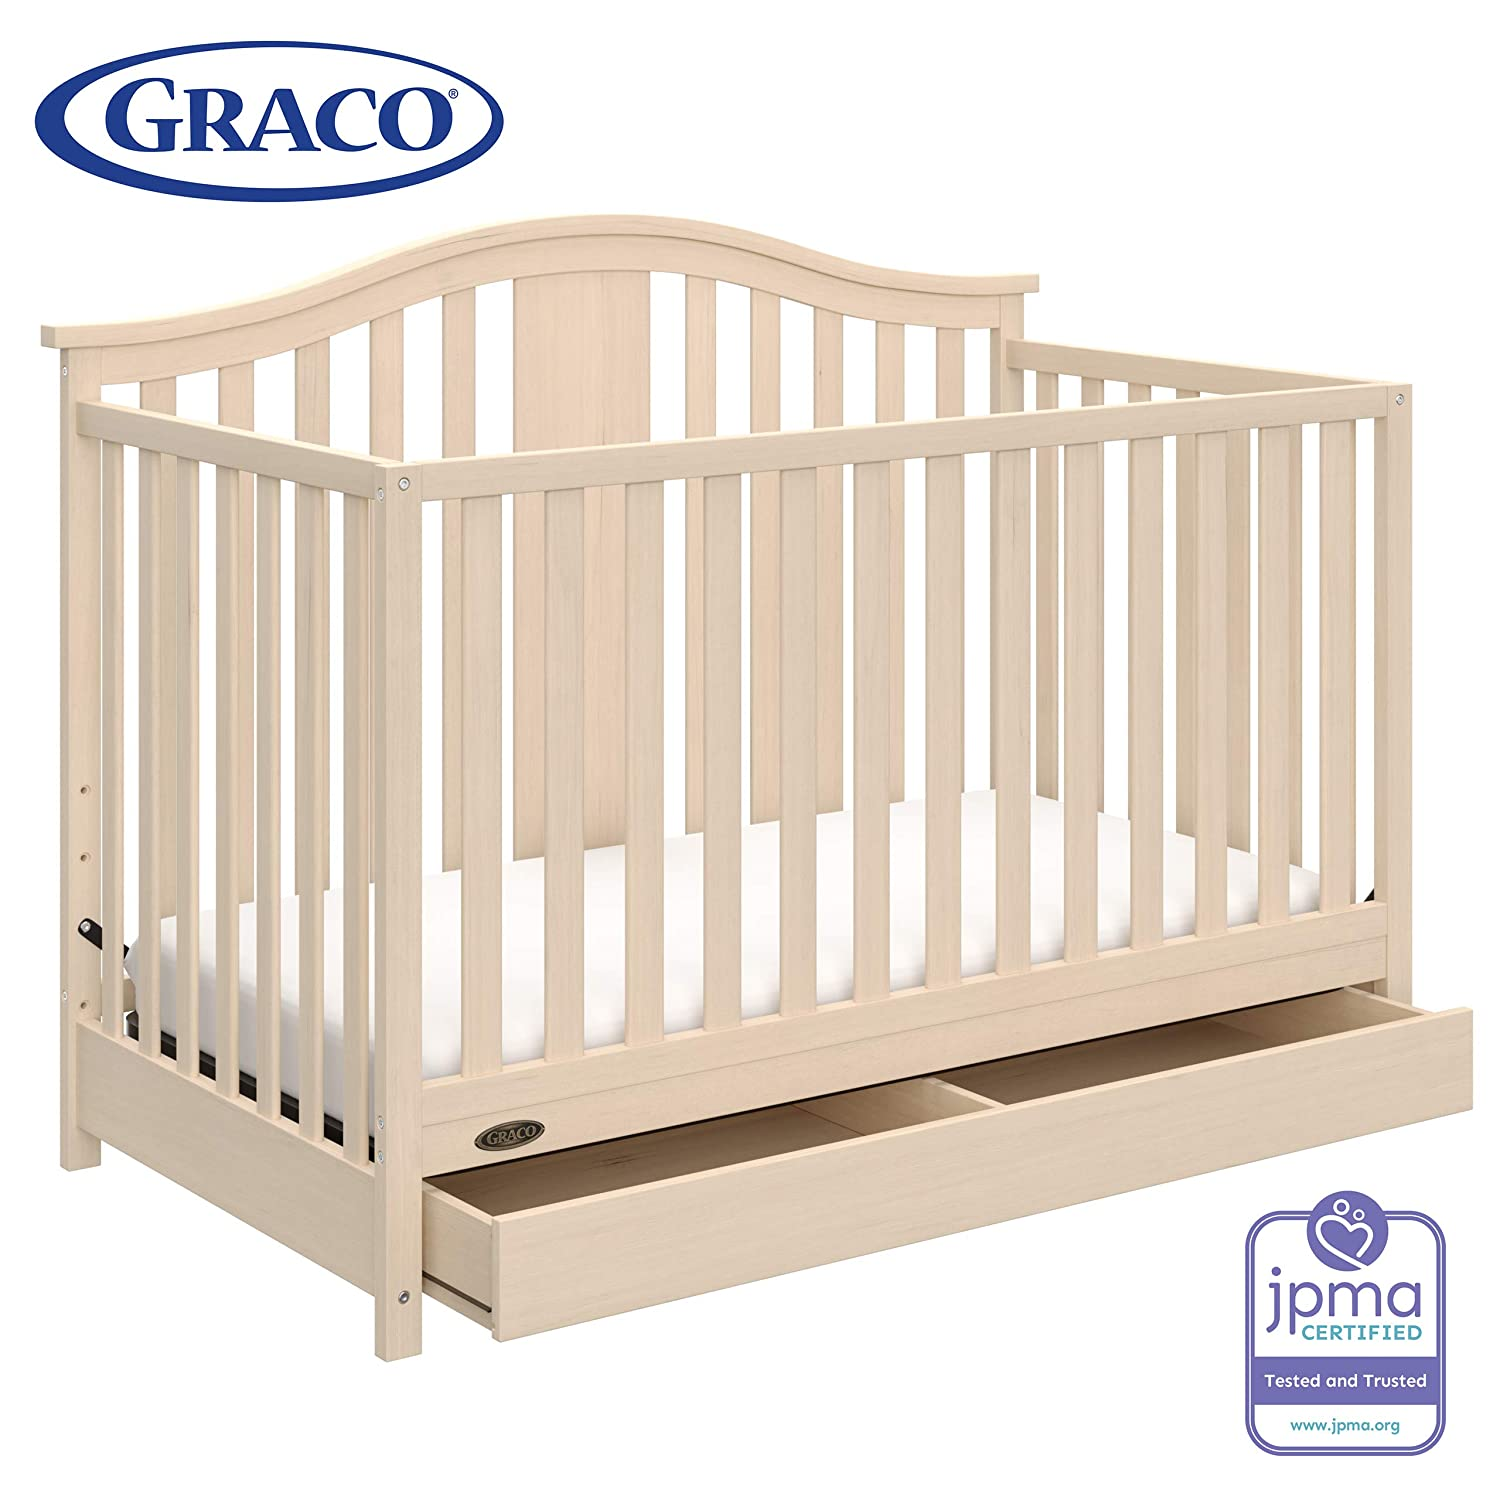 Graco Solano 4 in 1 Convertible Crib with Drawer, Whitewash, Easily Converts to Toddler Bed Day Bed or Full Bed, Three Position Adjustable Height Mattress, Assembly Required Mattress Not Included